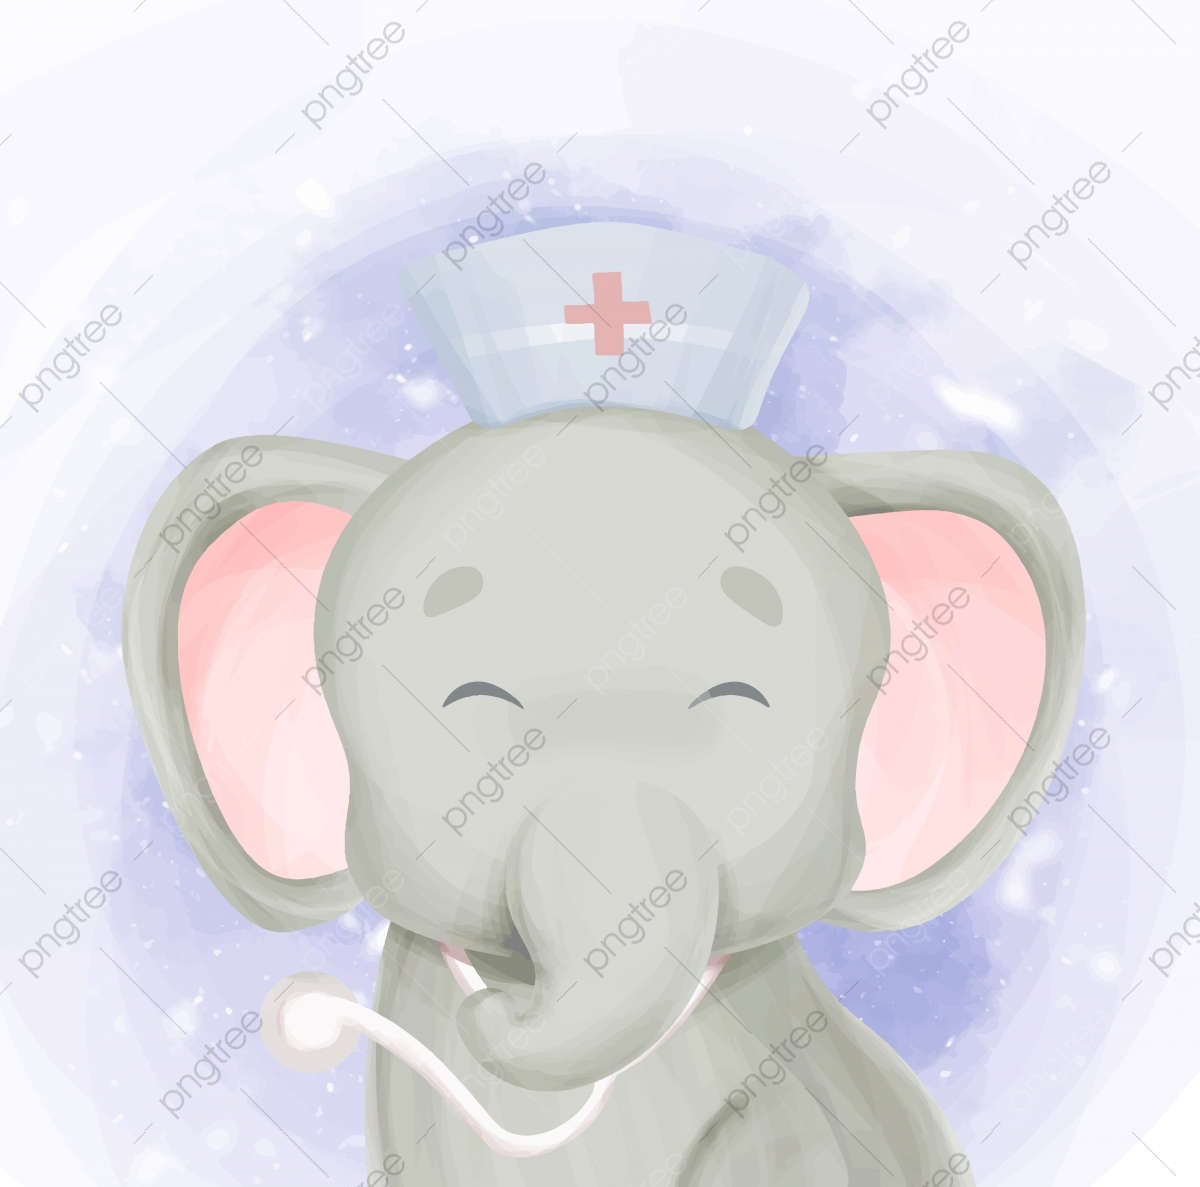 Cute Smile Doctor Baby Elephant Baby Elephant Clipart Adorable Animal Png And Vector With Transparent Background For Free Download Download free baby elephant vectors and other types of baby elephant graphics and clipart at freevector.com! https pngtree com freepng cute smile doctor baby elephant 5062927 html